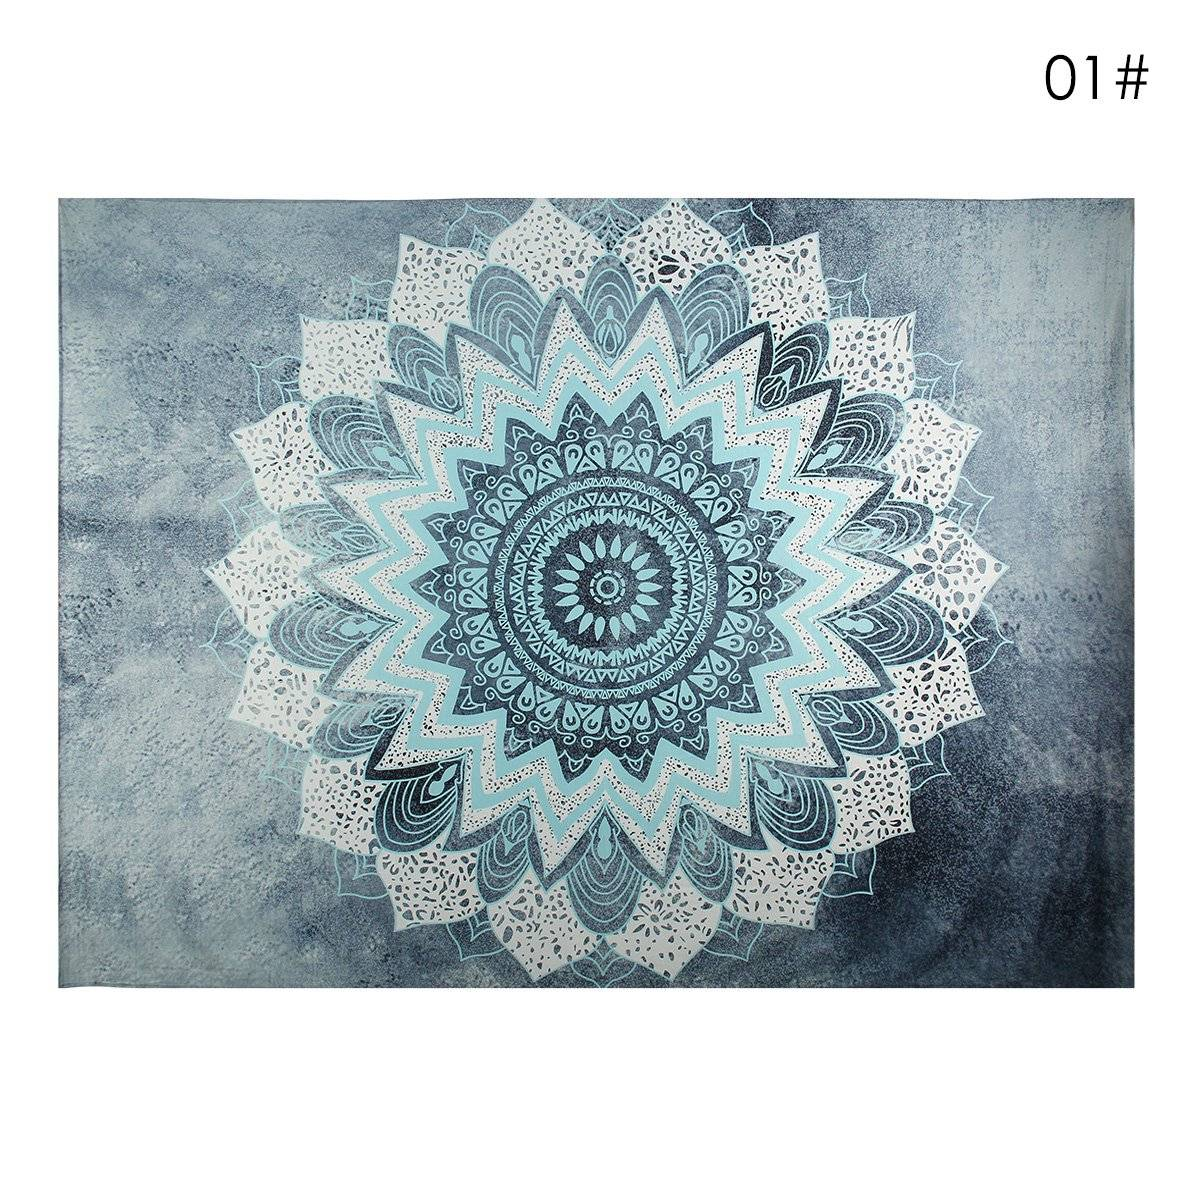 More Tapestries